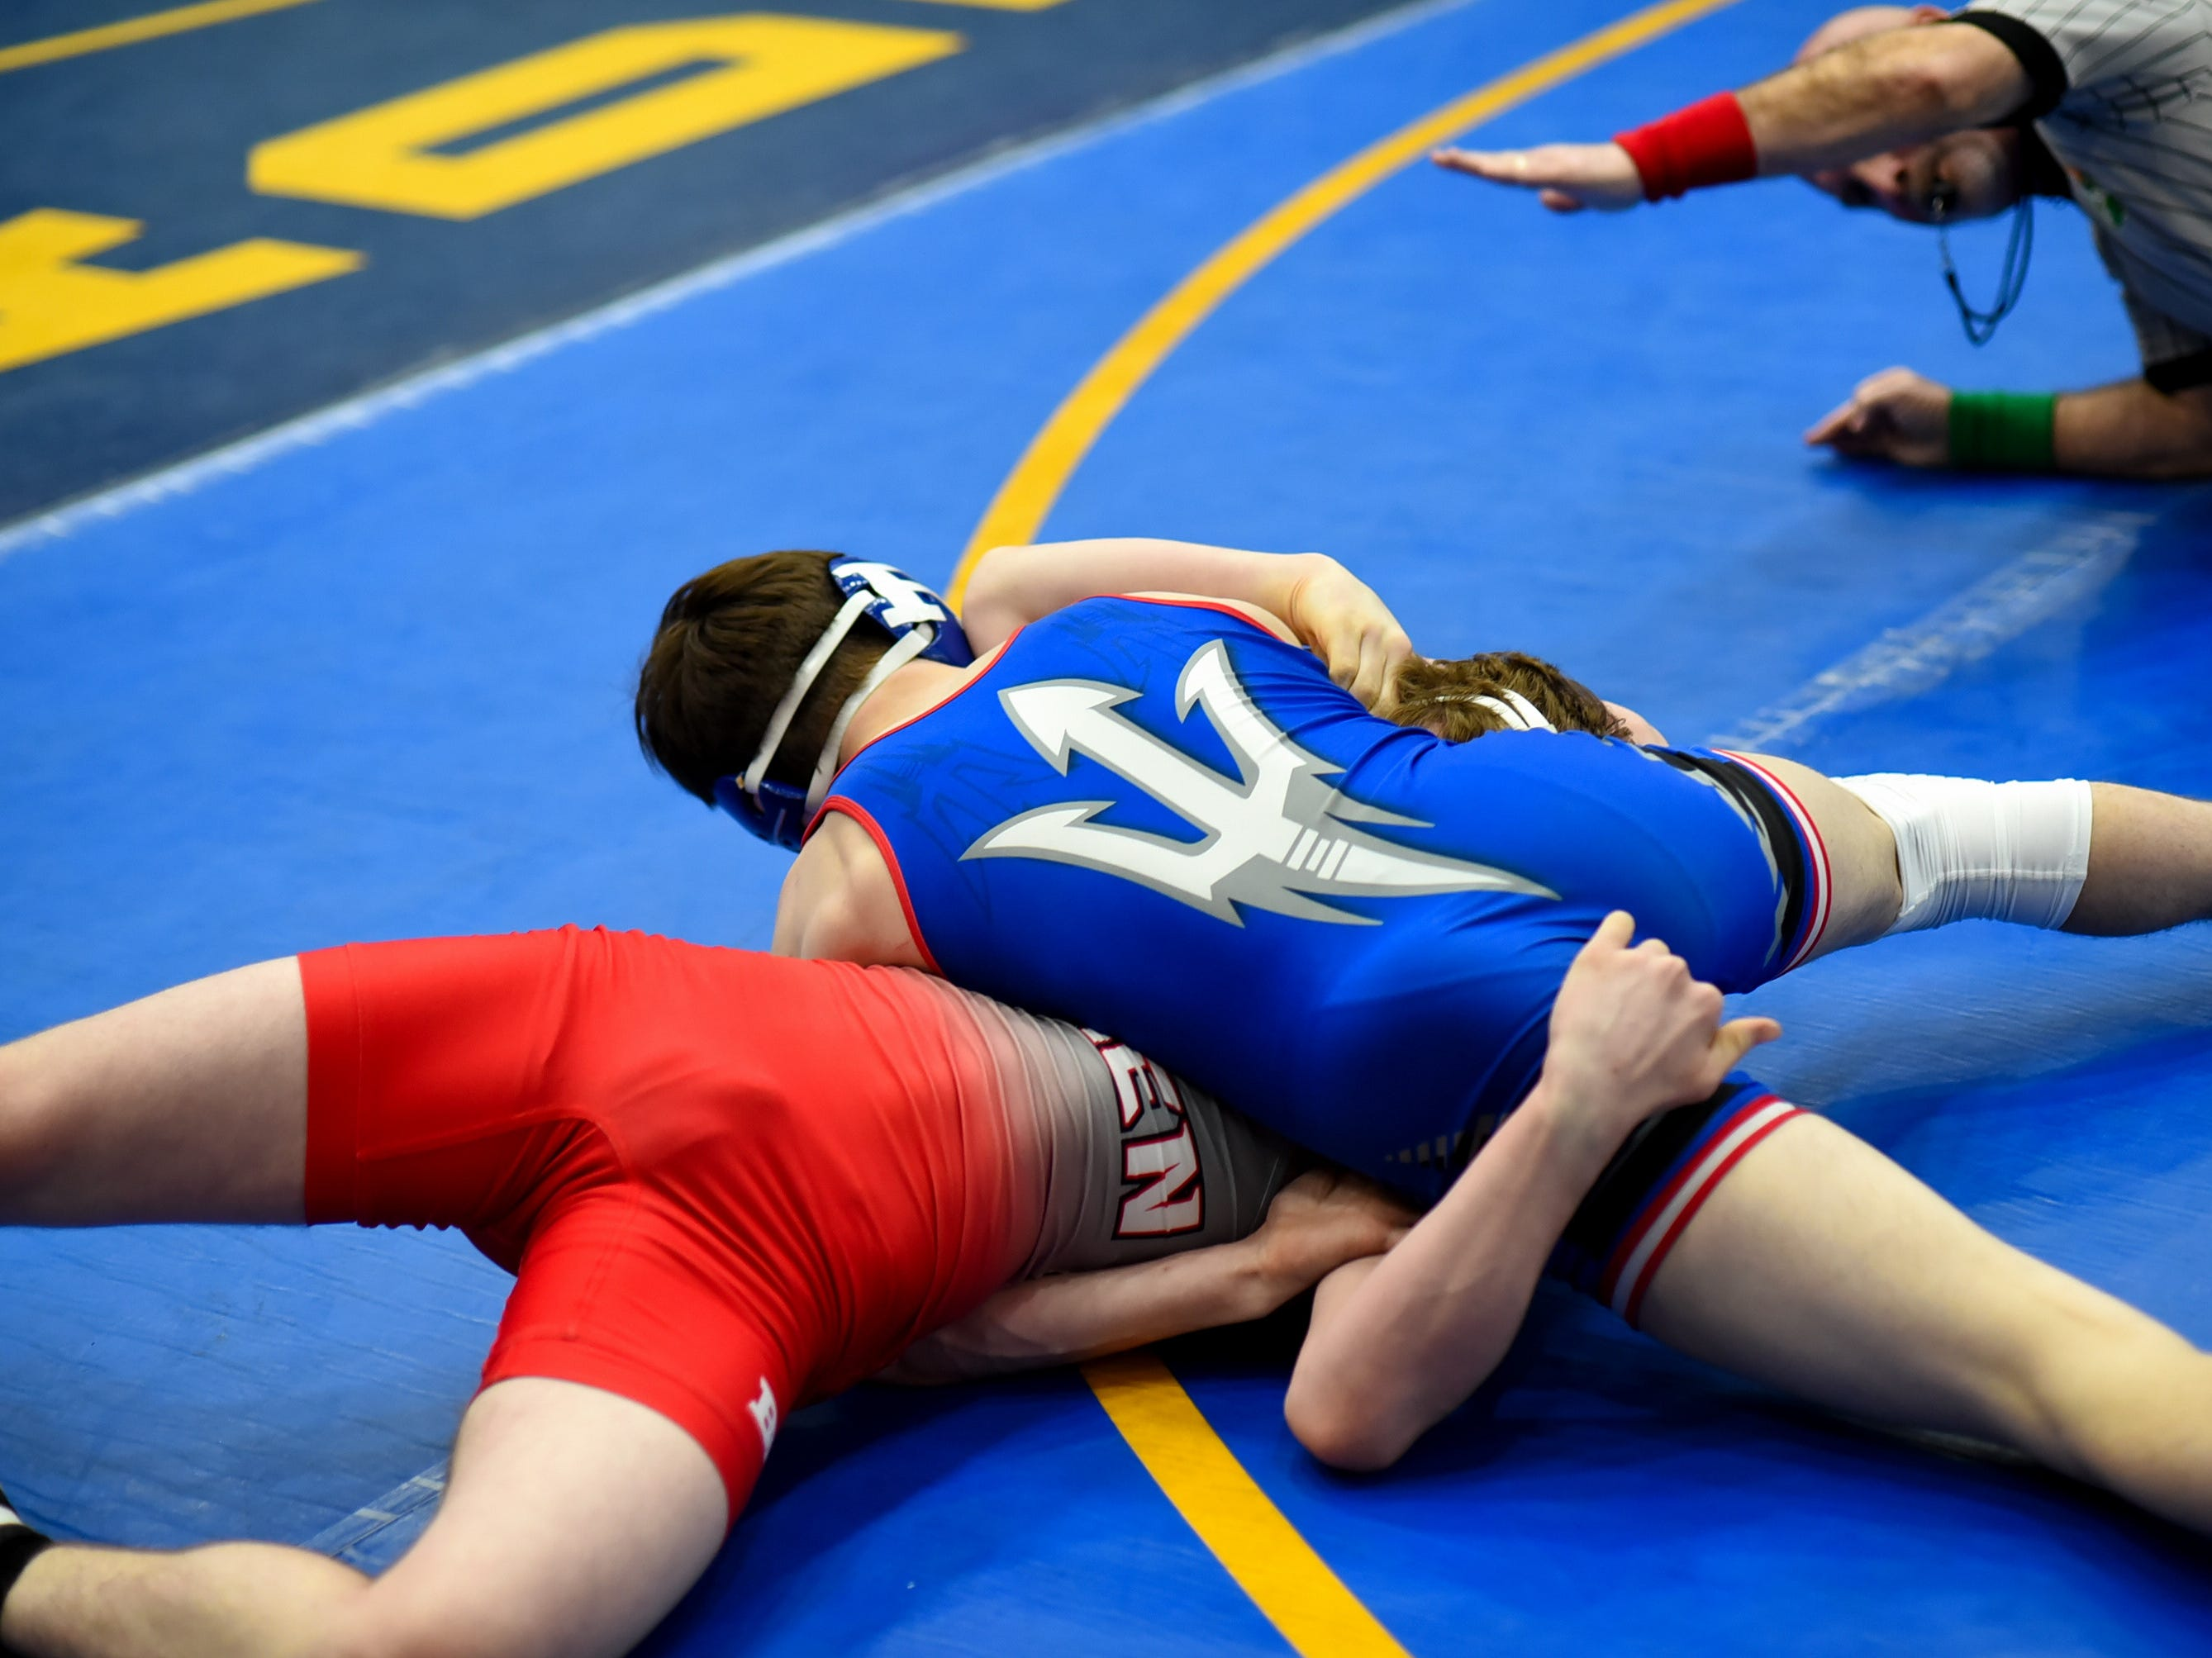 Colton Robins of Reading scored his 100th carrier victory in a pinfall over Jon Woodward of Goshen at the Bob Kearns Madeira Invitational, January 4, 2019.